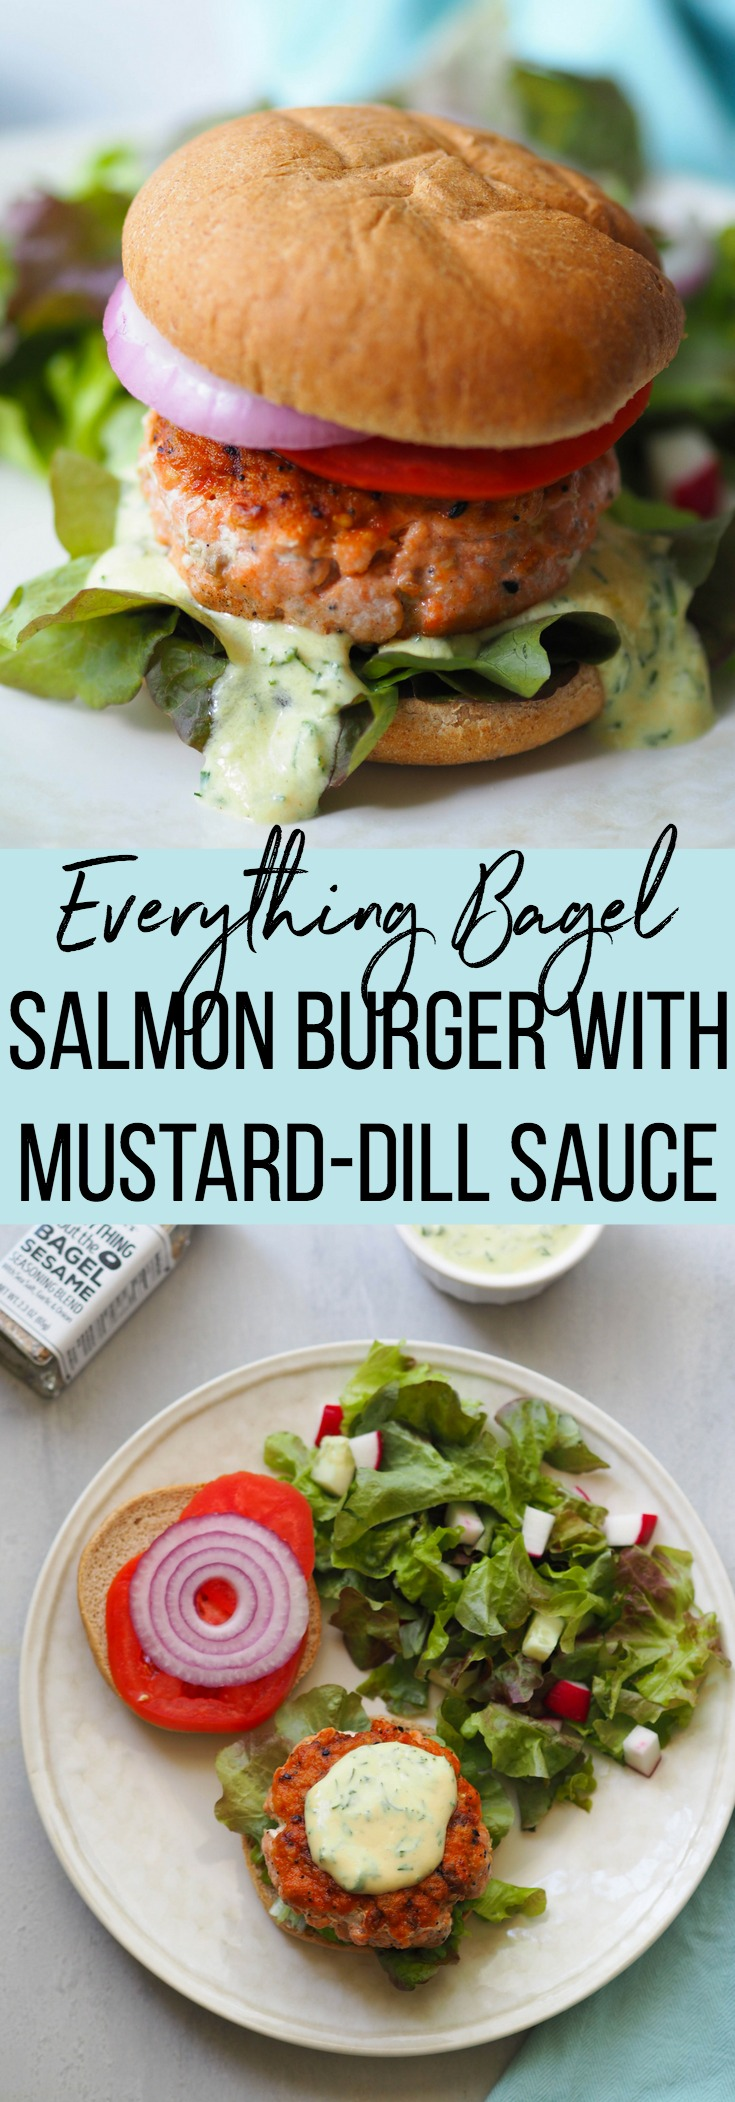 Everything bagel salmon burger is flavored with Trader Joe's Everything But The Bagel seasoning and topped with a creamy mustard-dill sauce! #burger #salmon #easyrecipe #weeknightrecipe